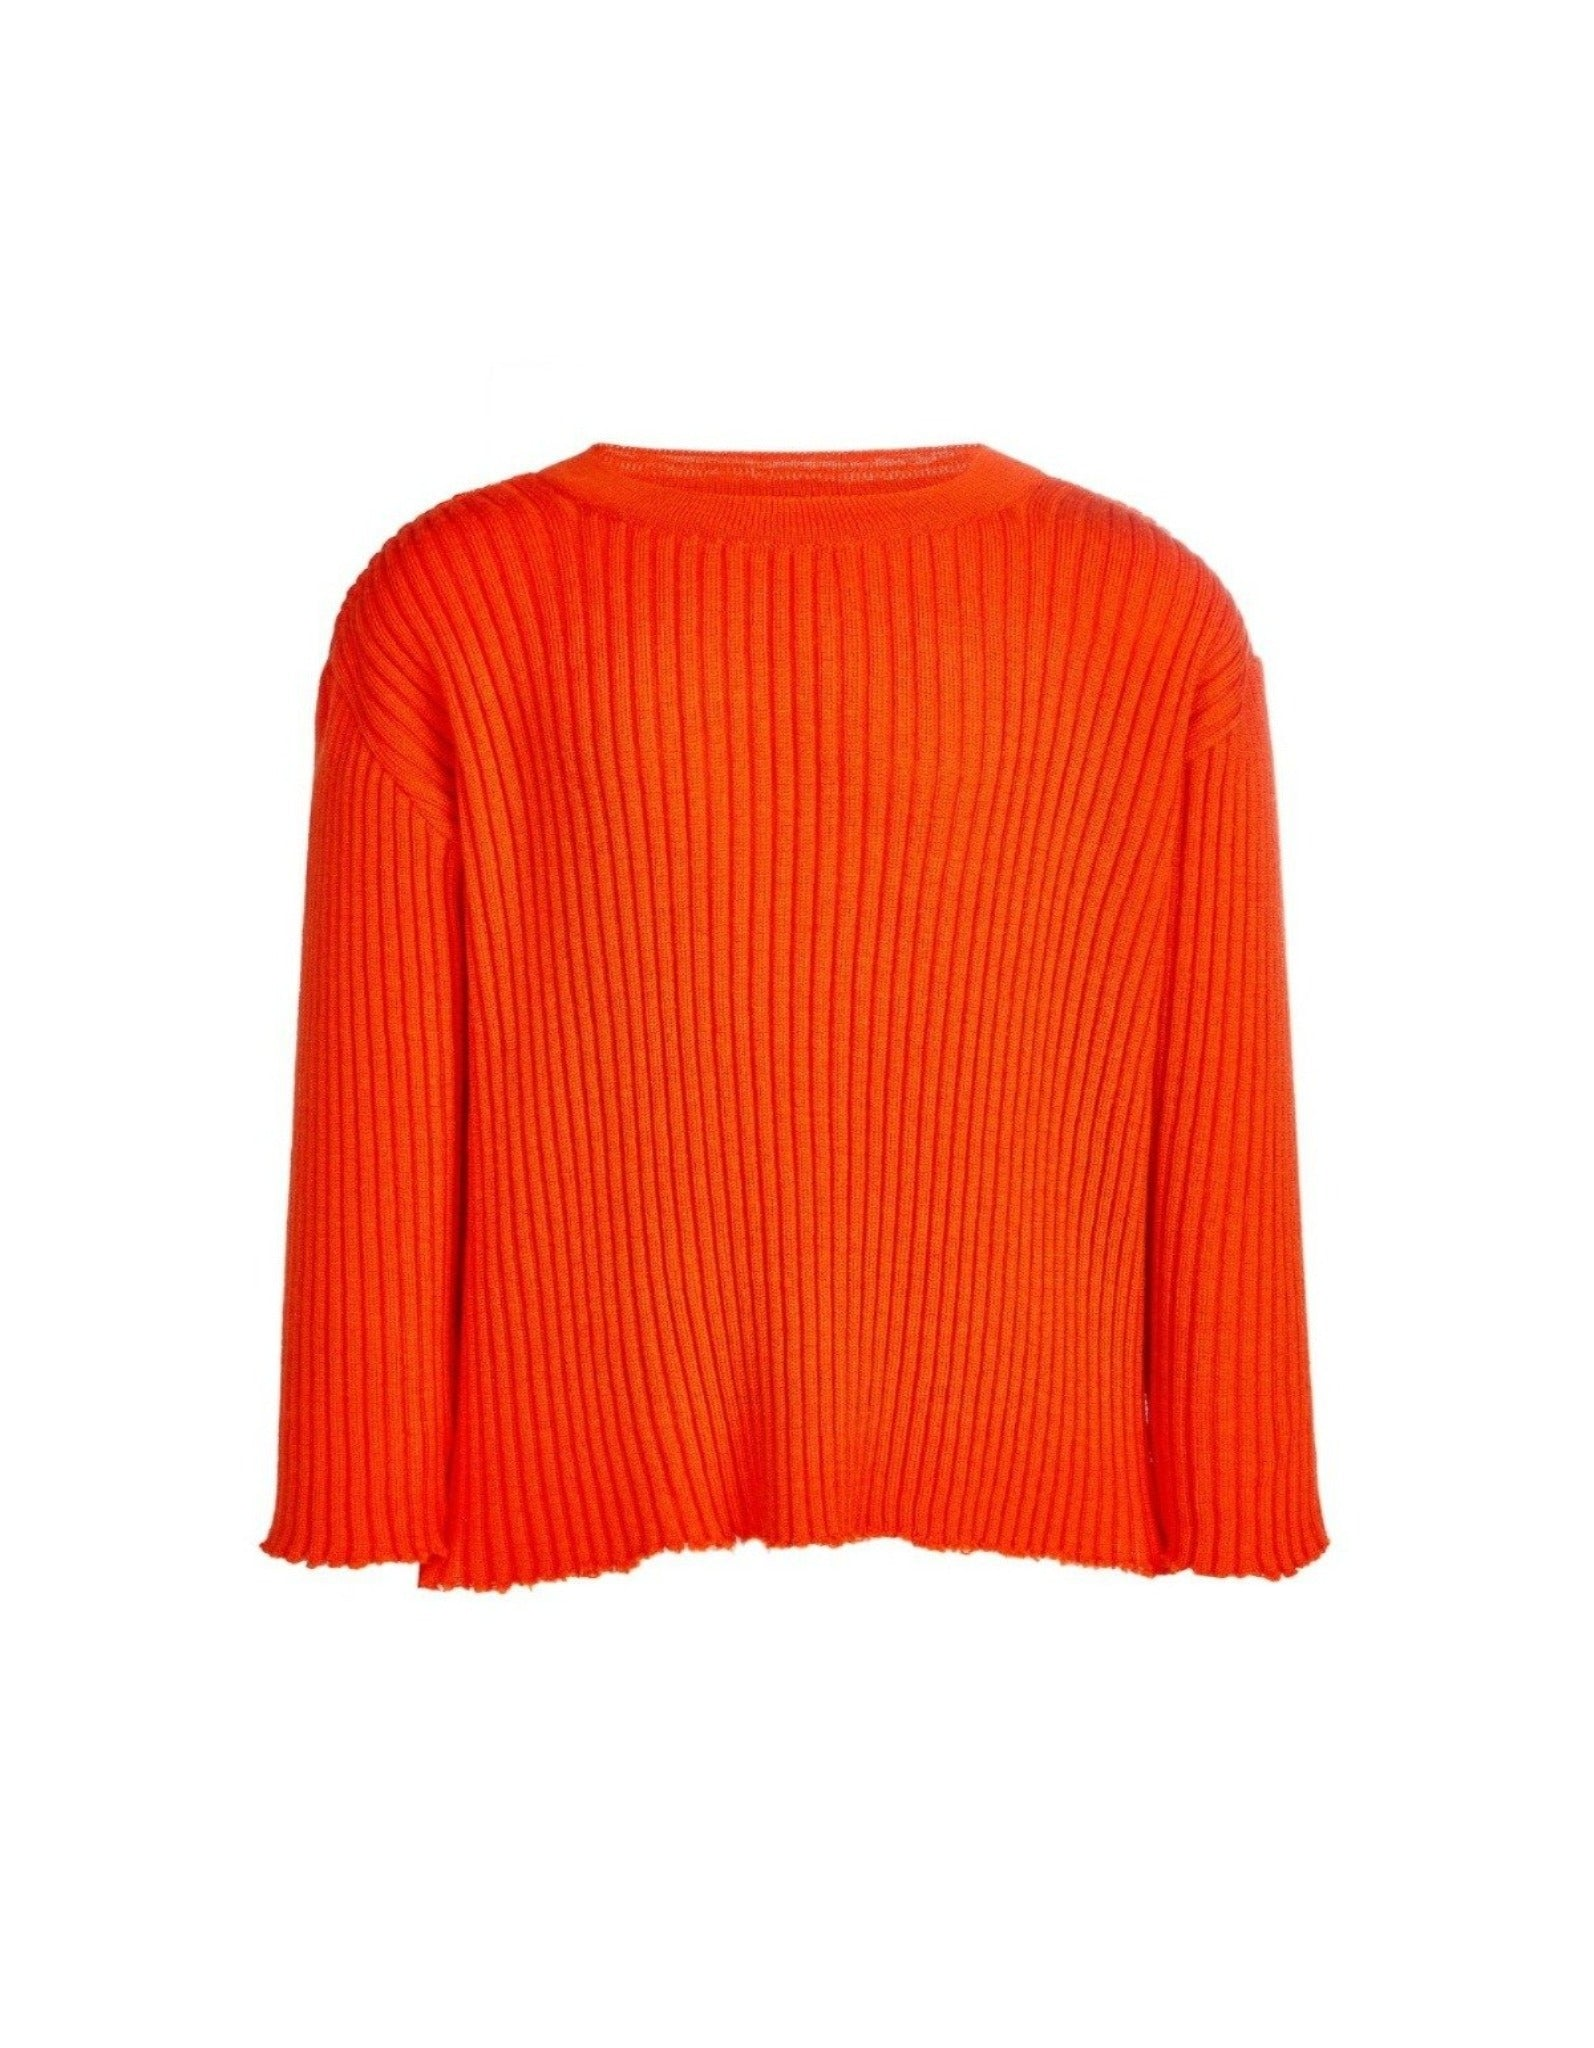 CREW NECK IN ORANGE